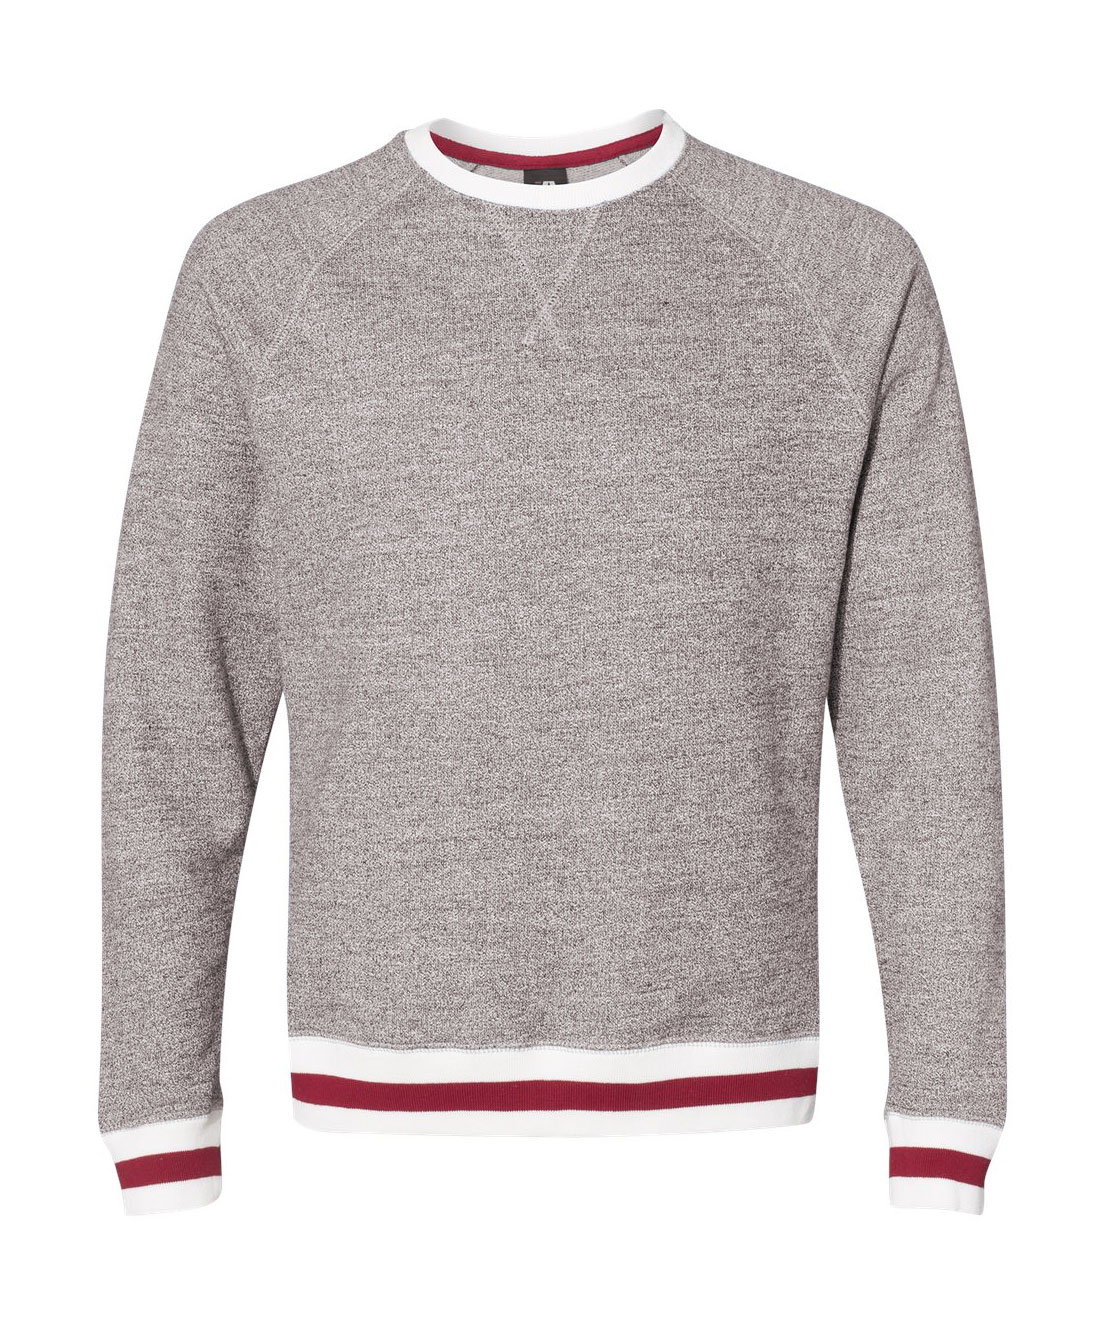 J. America Adult Peppered Fleece Crewneck Sweatshirt